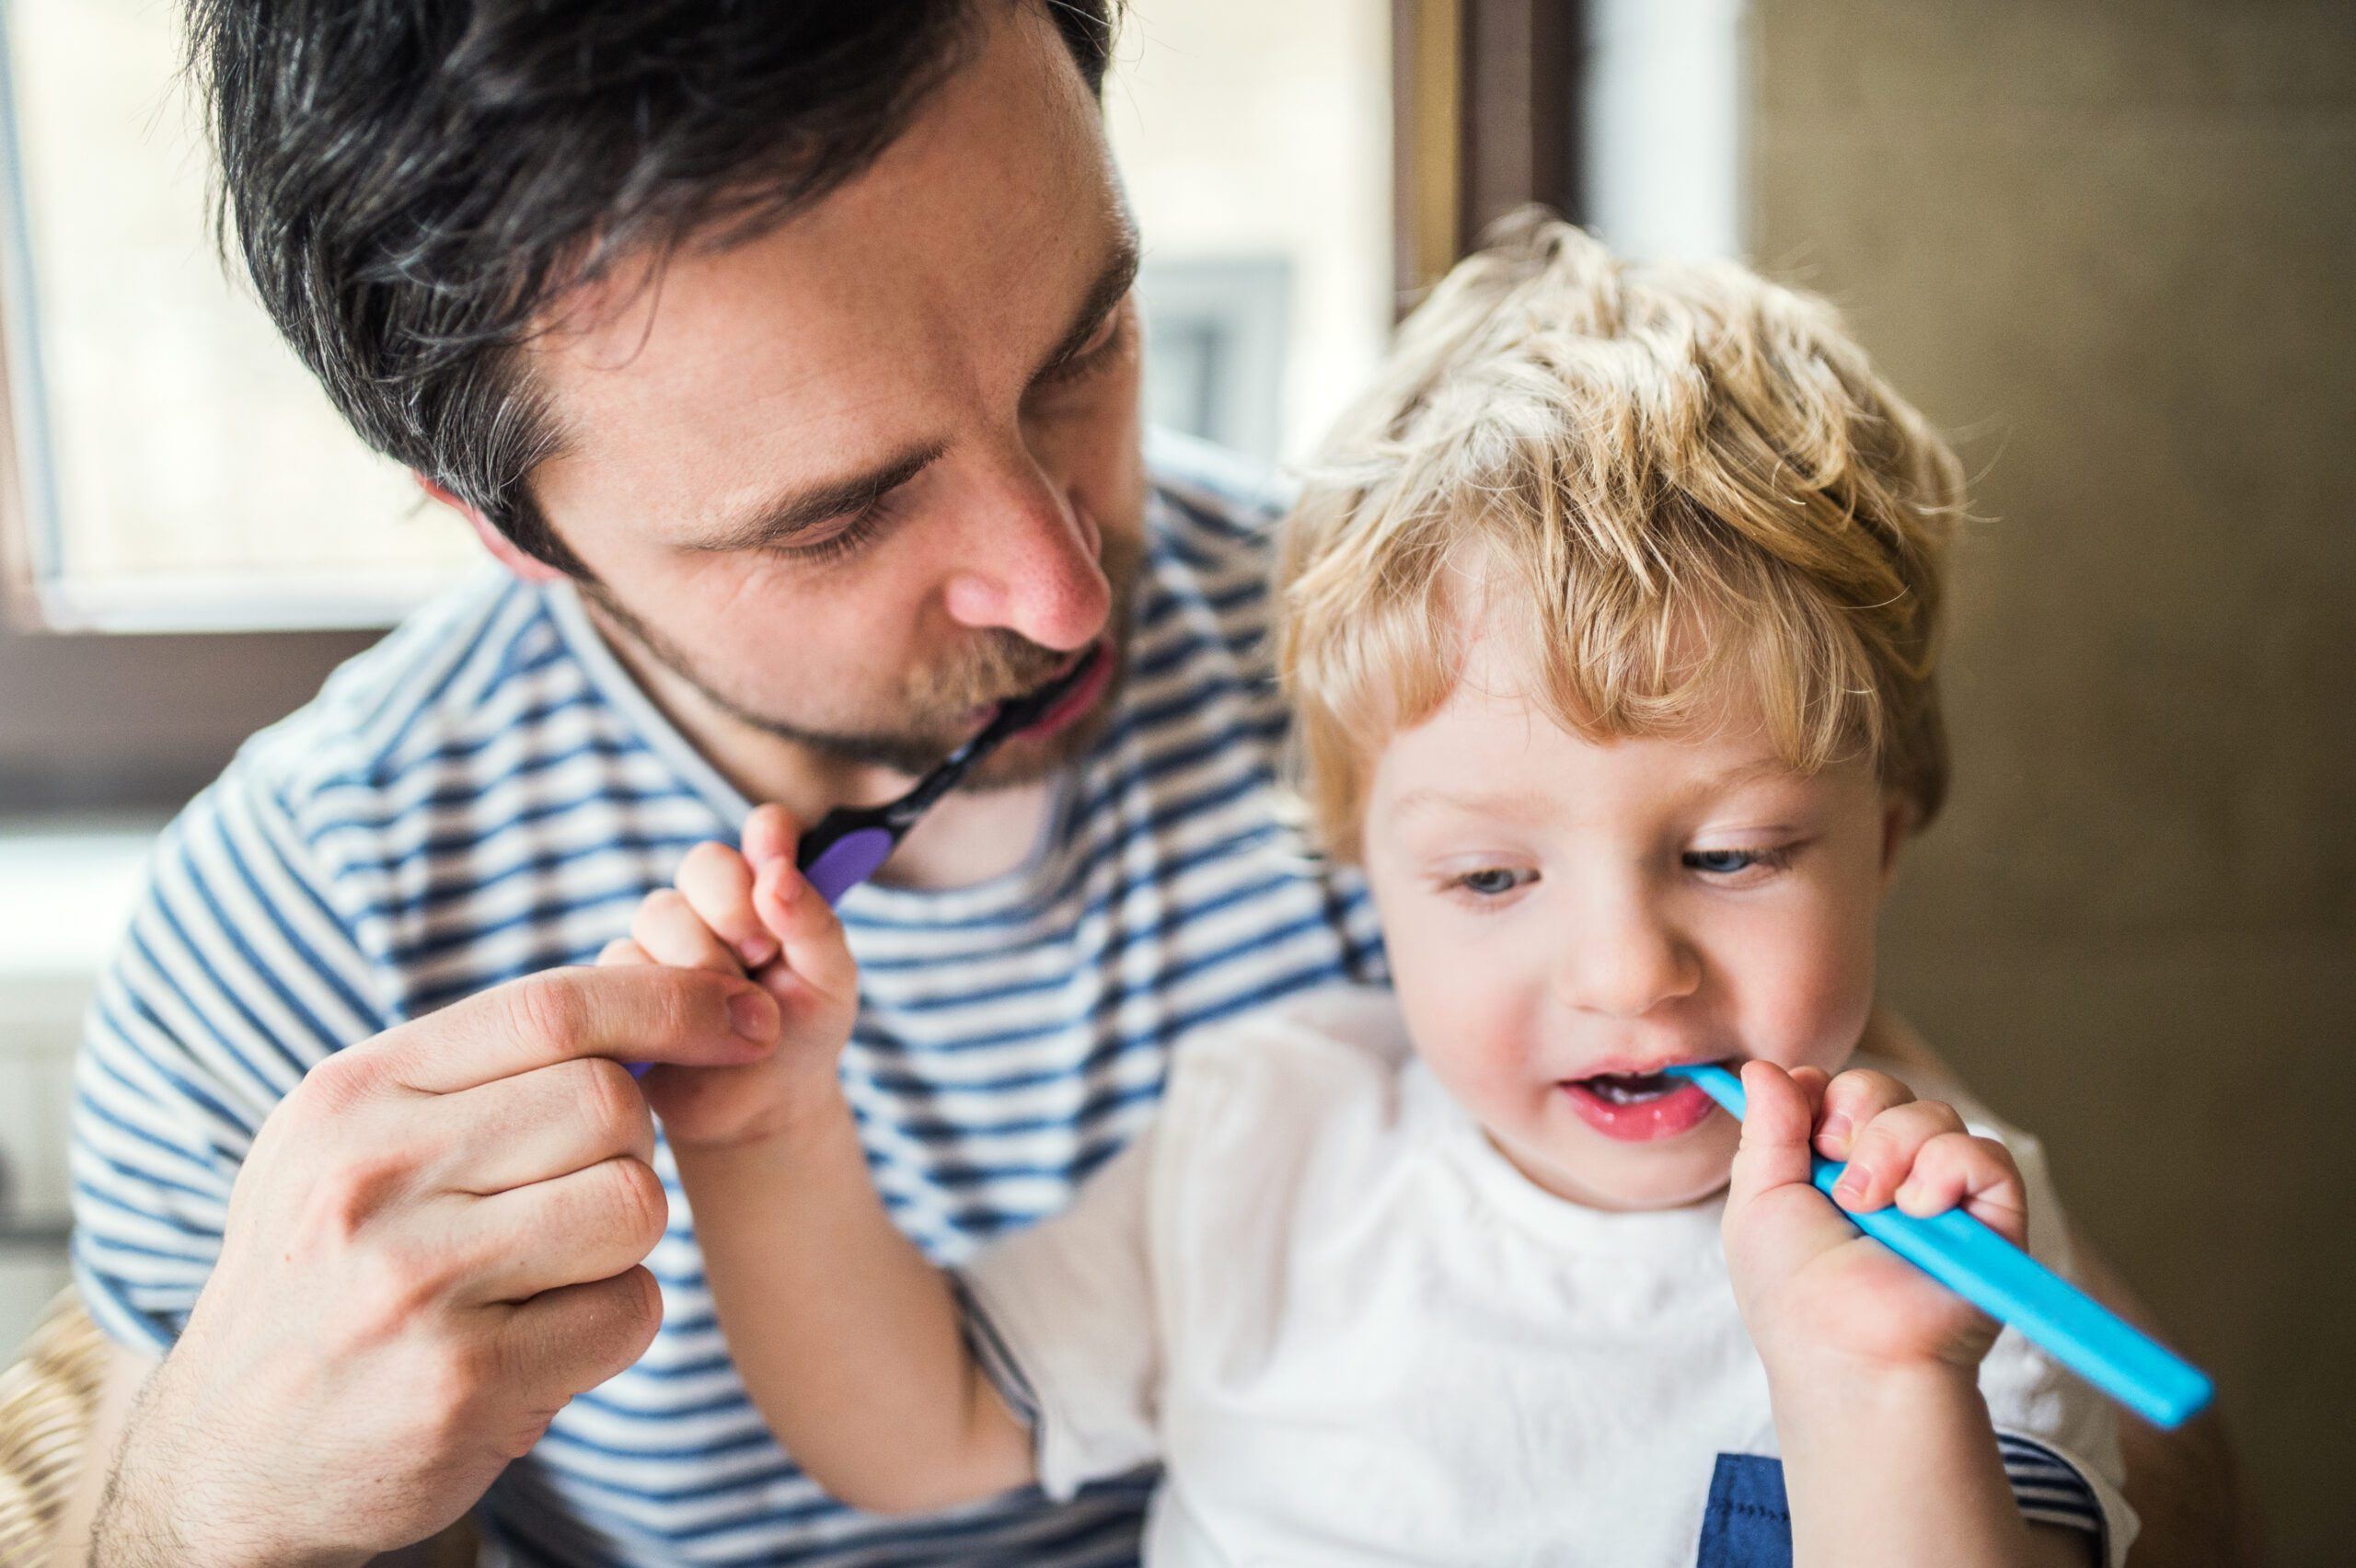 Toddlers equal new found independence.  This milestone does leave many parents asking about tips for teaching a toddler how to brush their teeth. Today, we are going to go over seven amazing tips to make this fun for both parent and child! #parentingtips #parentingtoddlers #oralhygiene #brushingtips #toddlers #baby